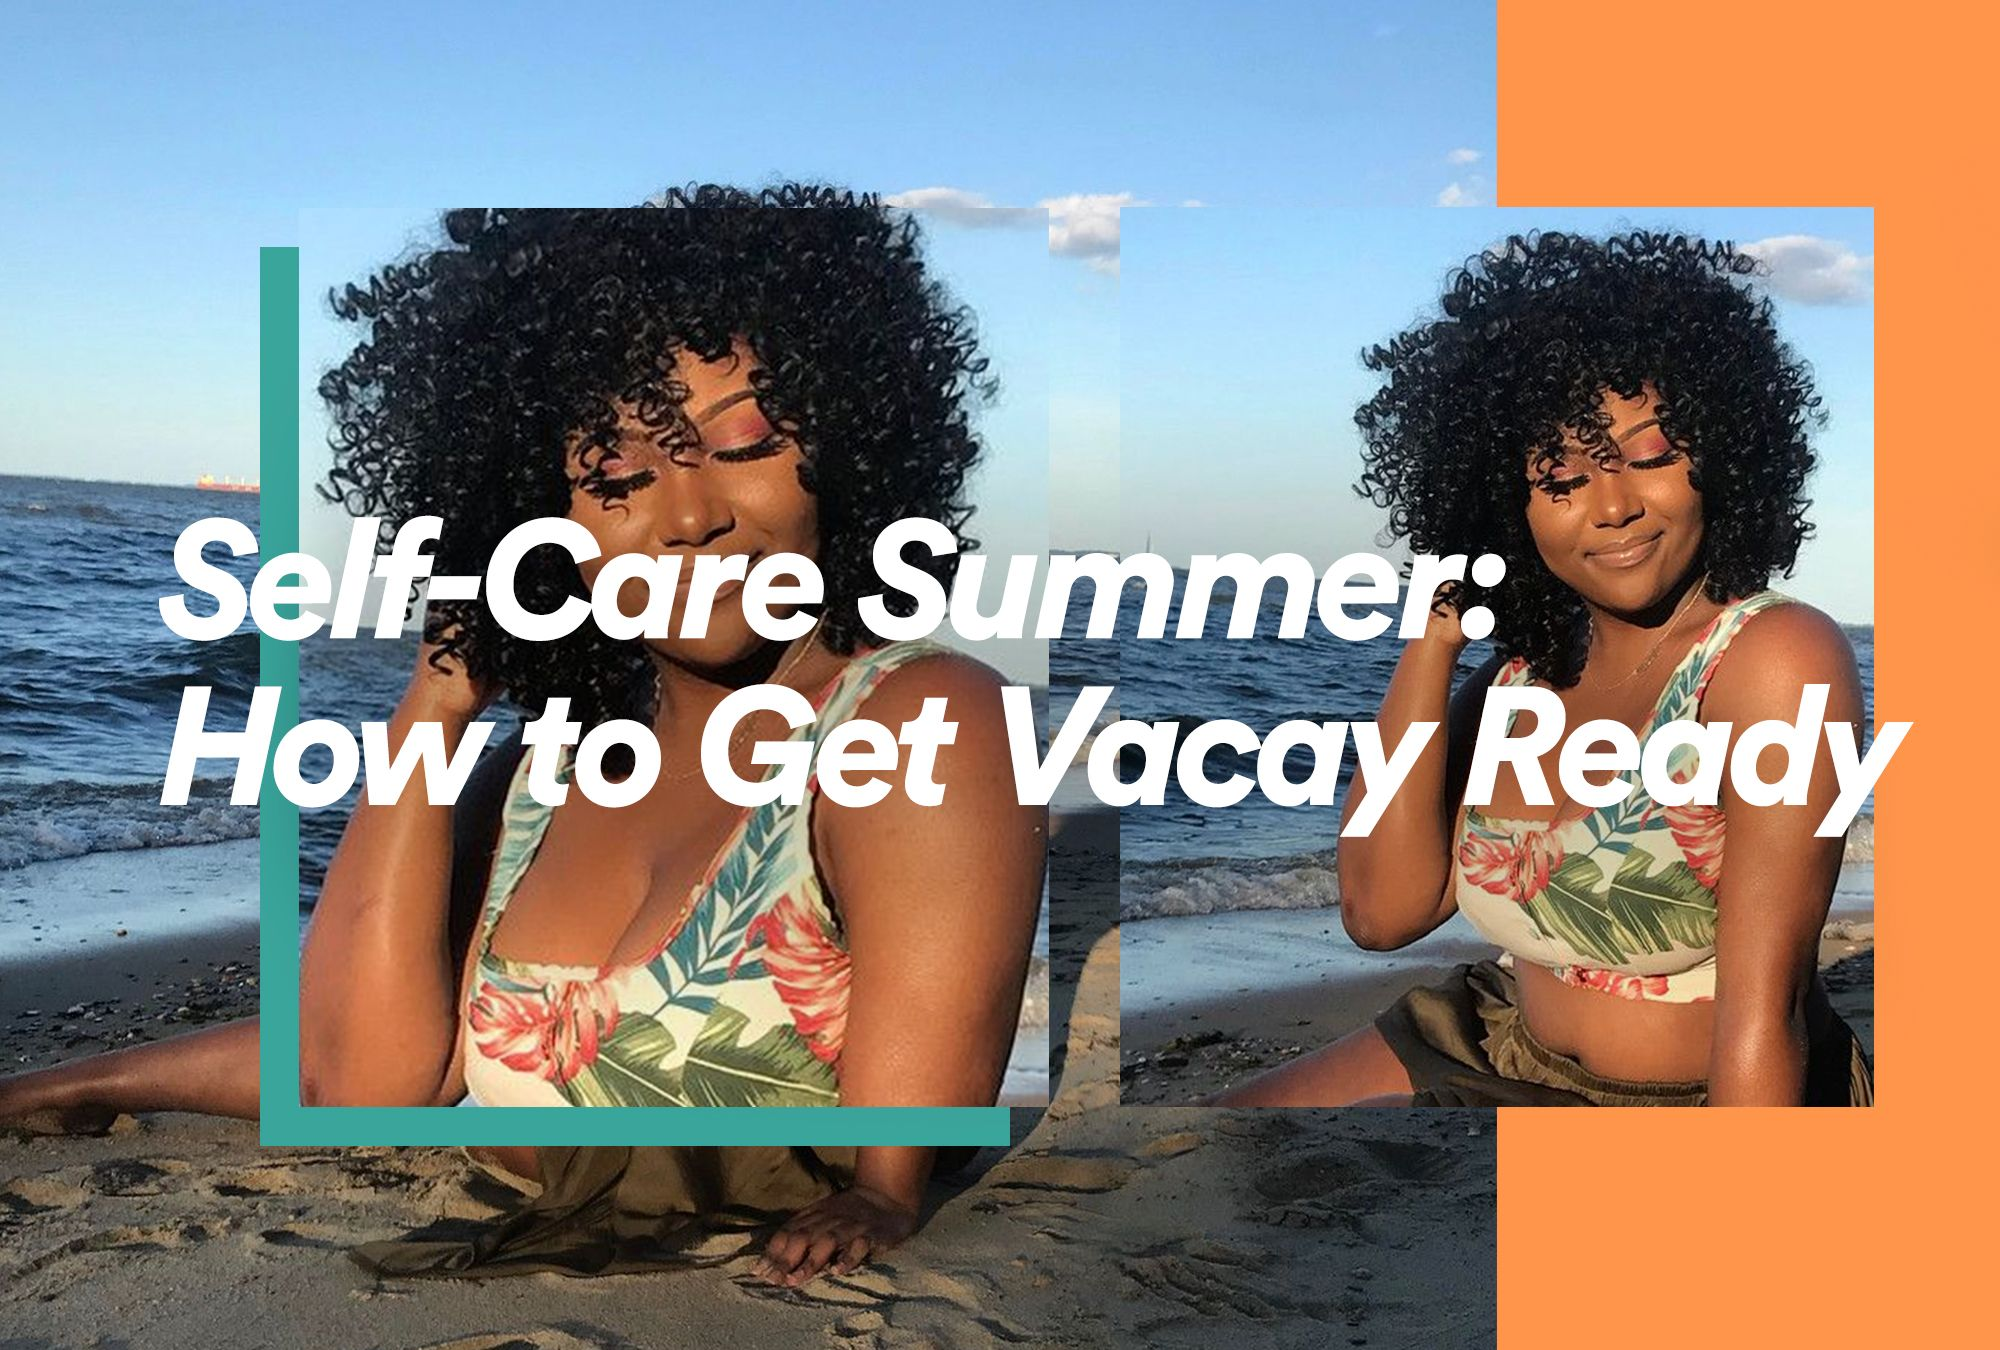 How to Get Vacay Ready